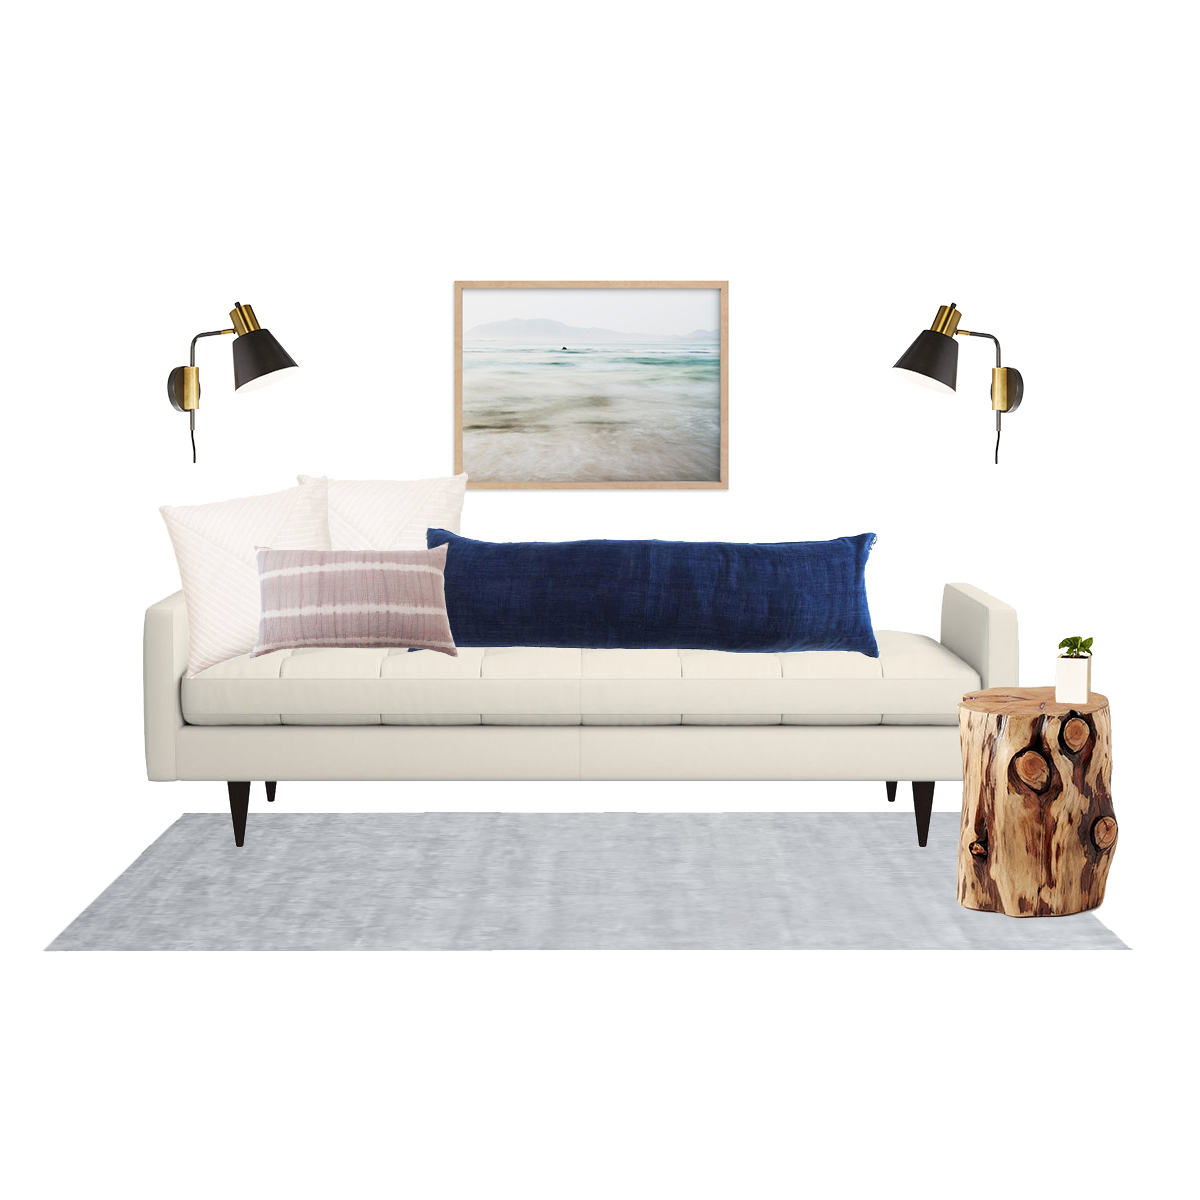 daybed  |  cream pillows  |  tie dye pillow  |  blue pillow  |  side table  |  plant  |  sconces  |  artwork  |  rug